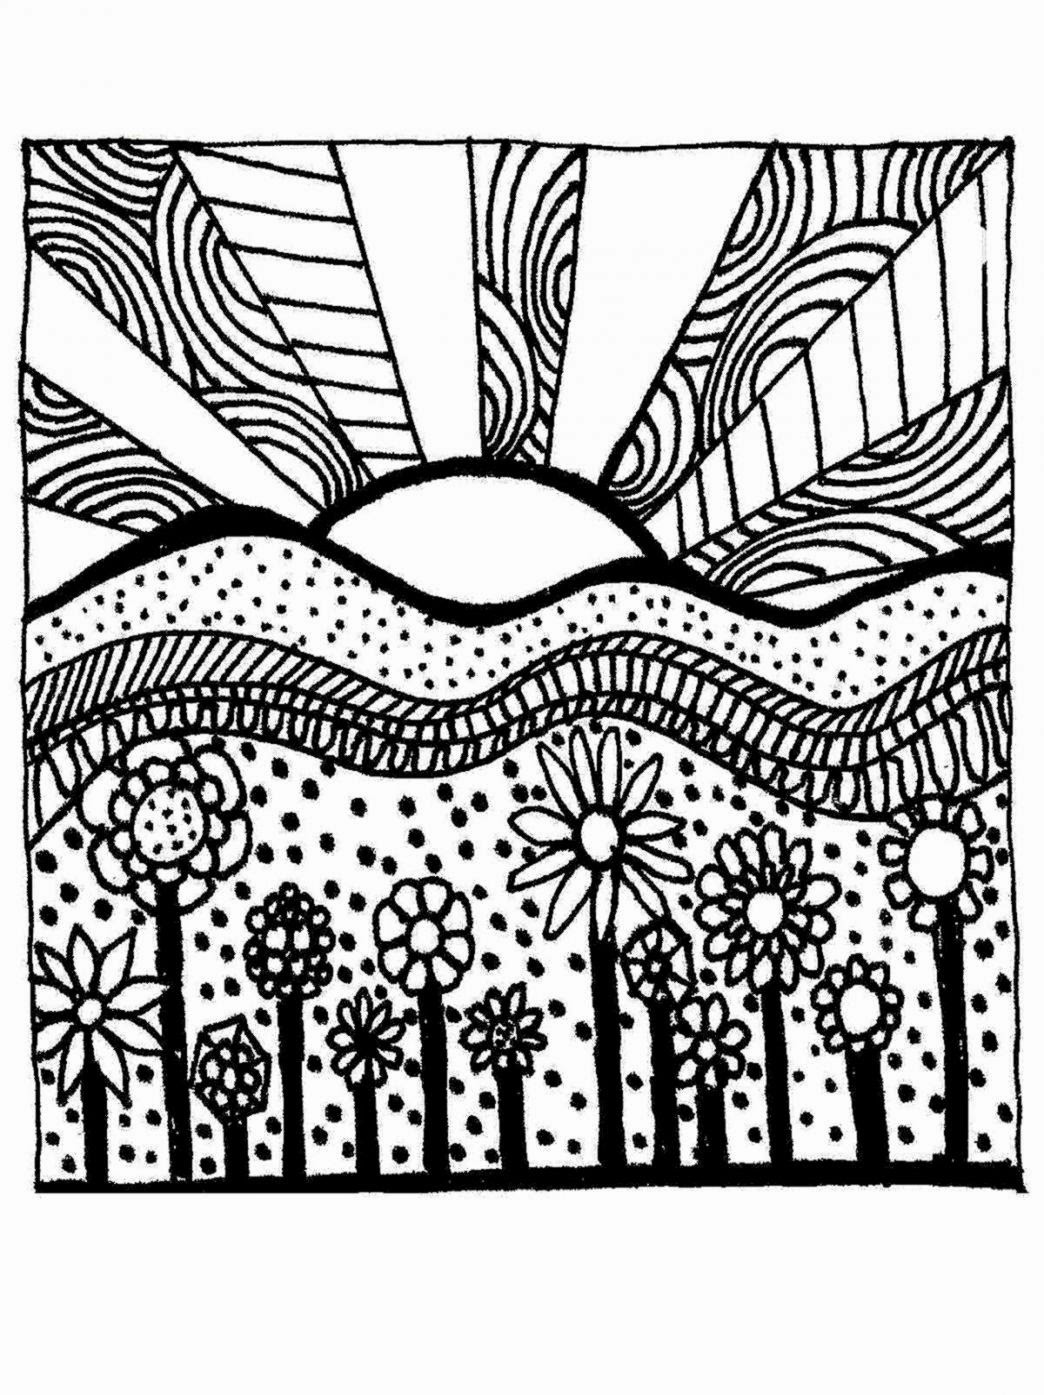 Online Adult Coloring Books  Free Coloring Pages For Adults To Print Special Image 22